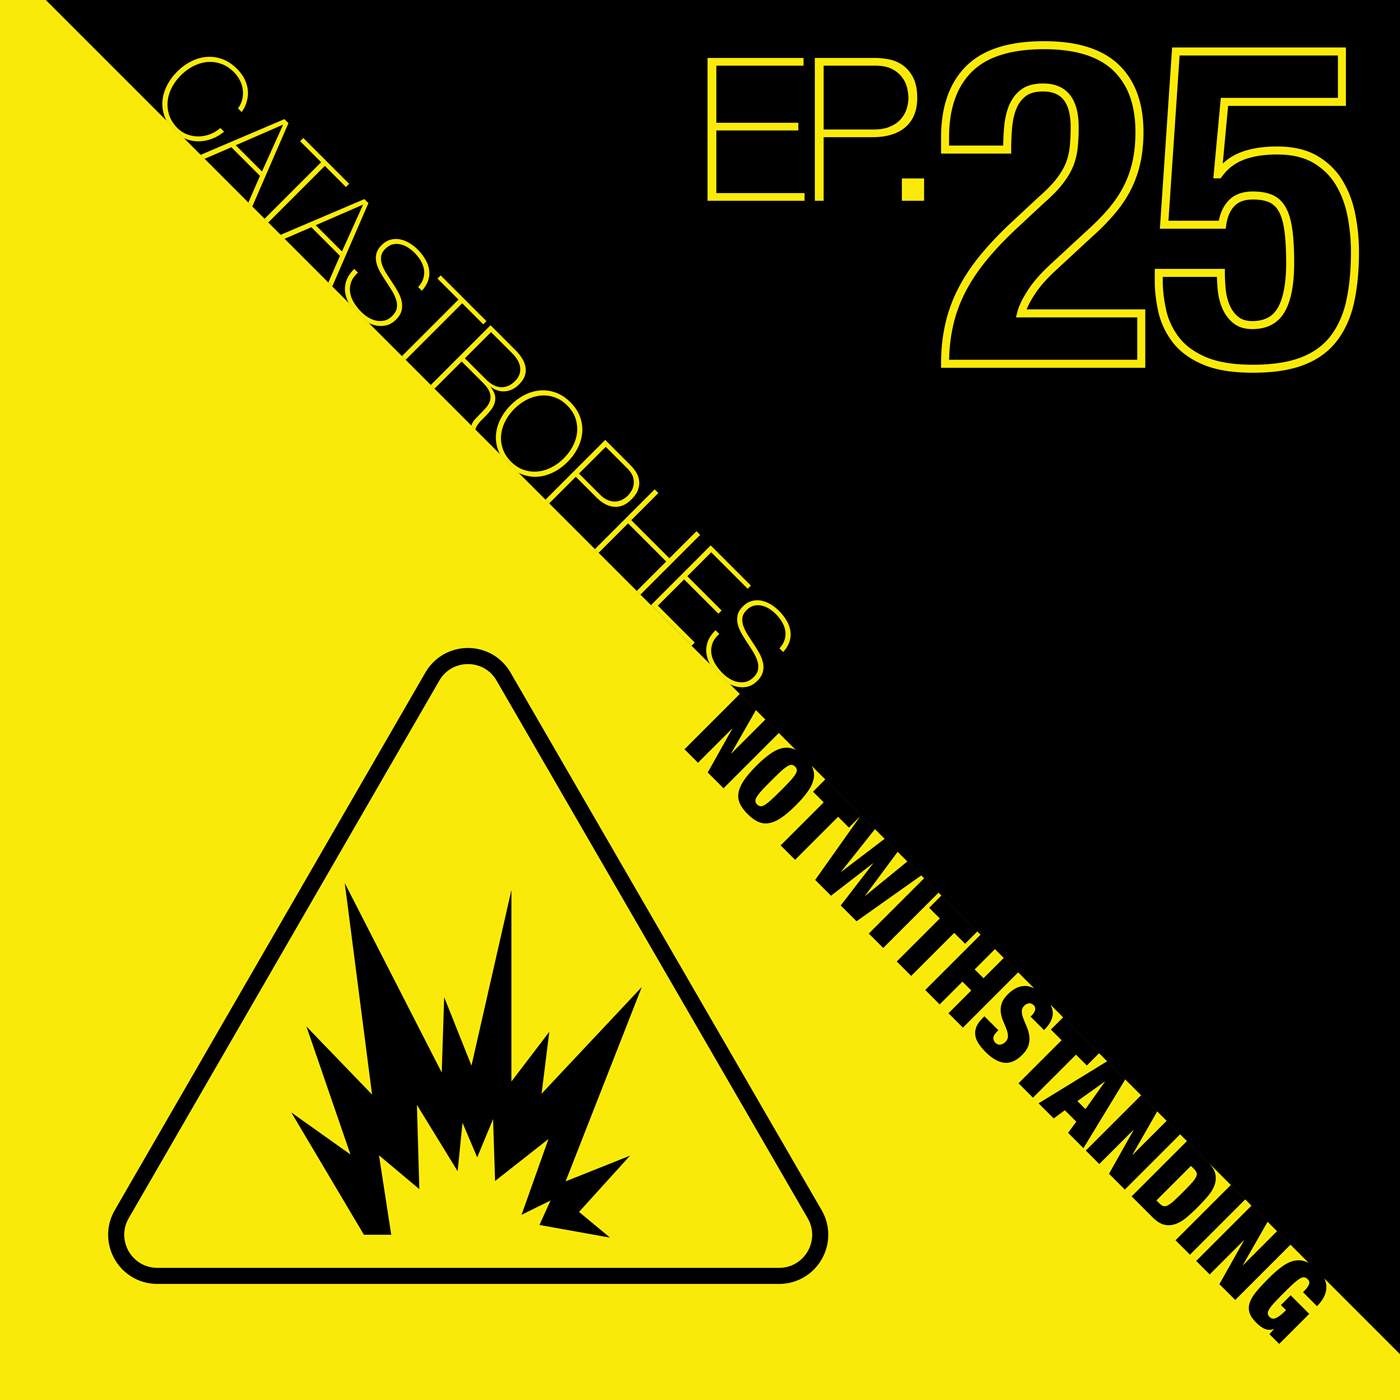 Cover Image of Catastrophes Notwithstanding Episode 25